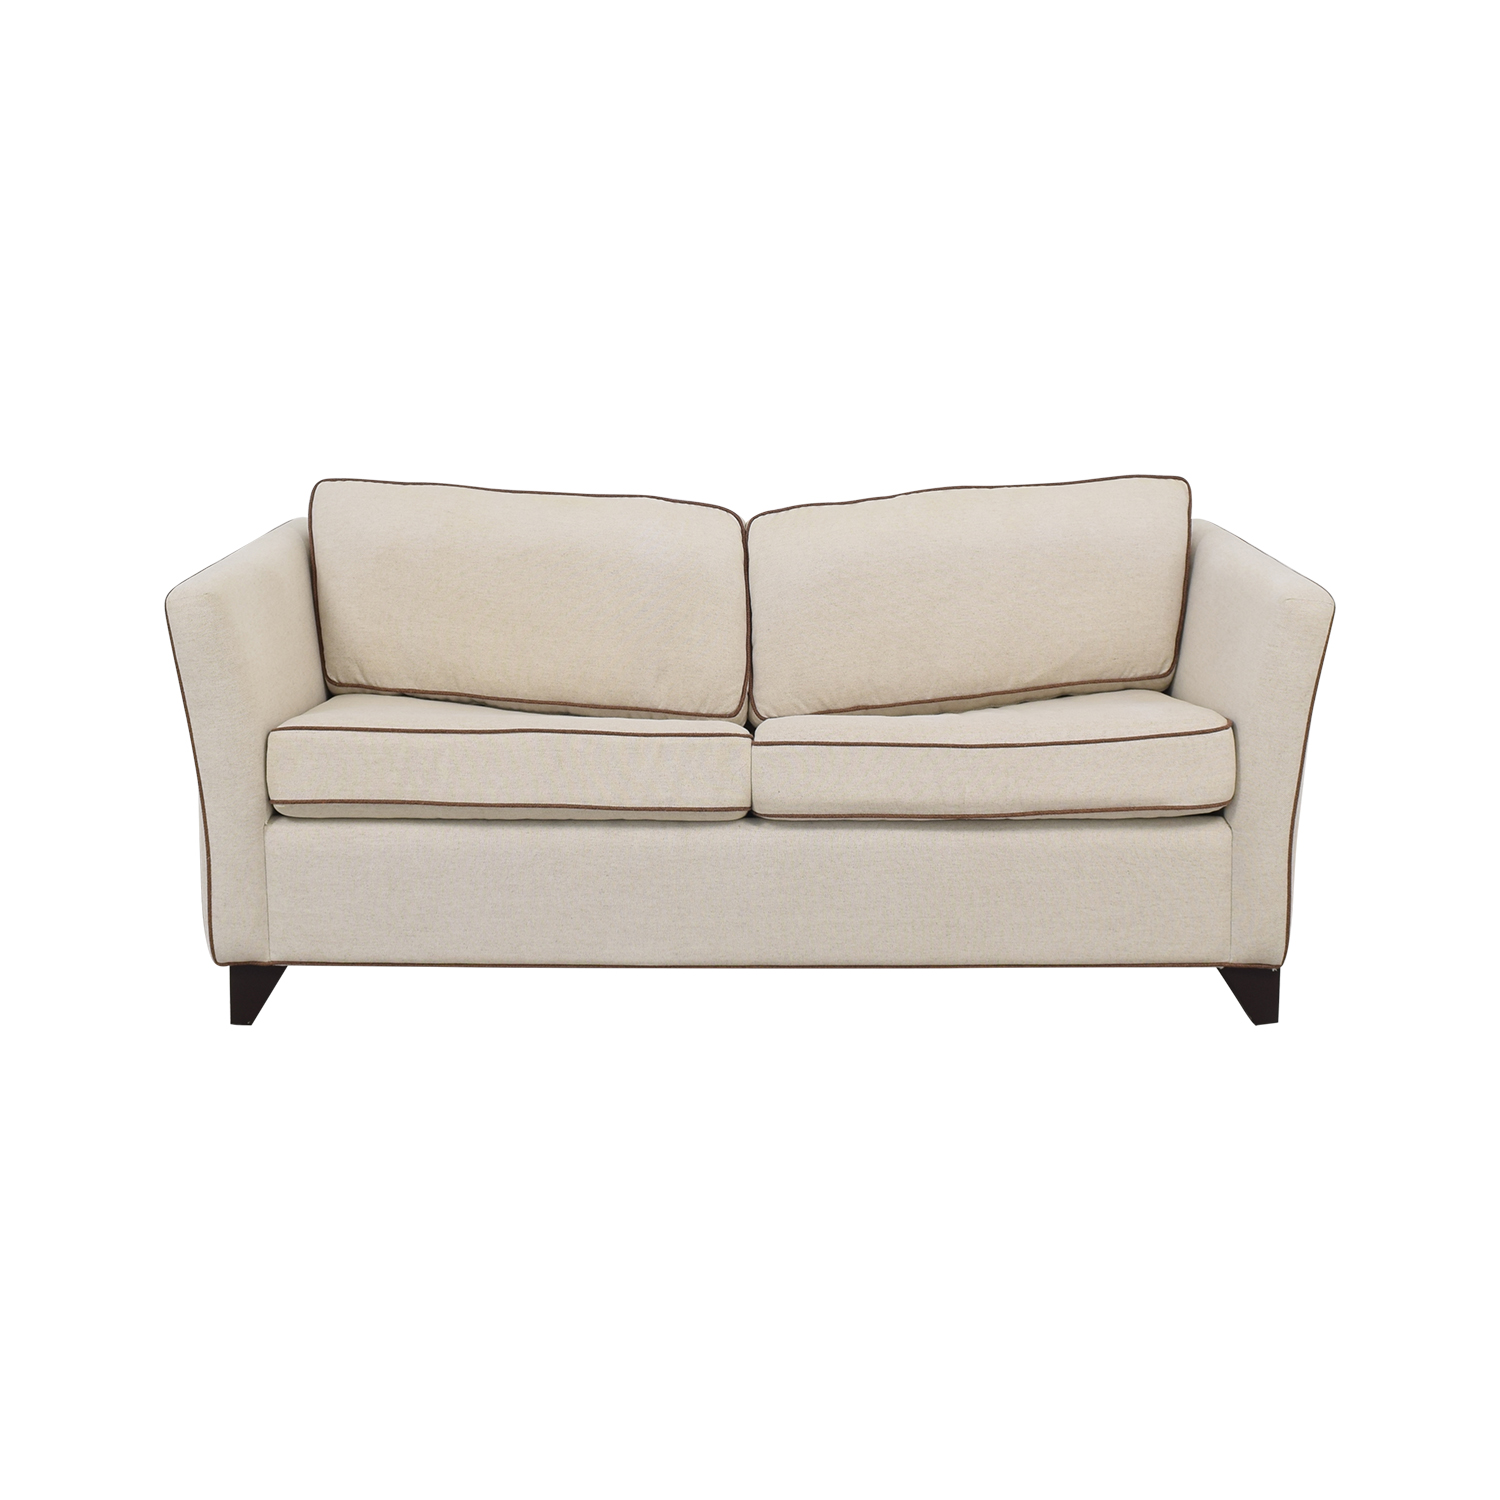 Carlyle Carlyle Sandy Sofa Bed for sale